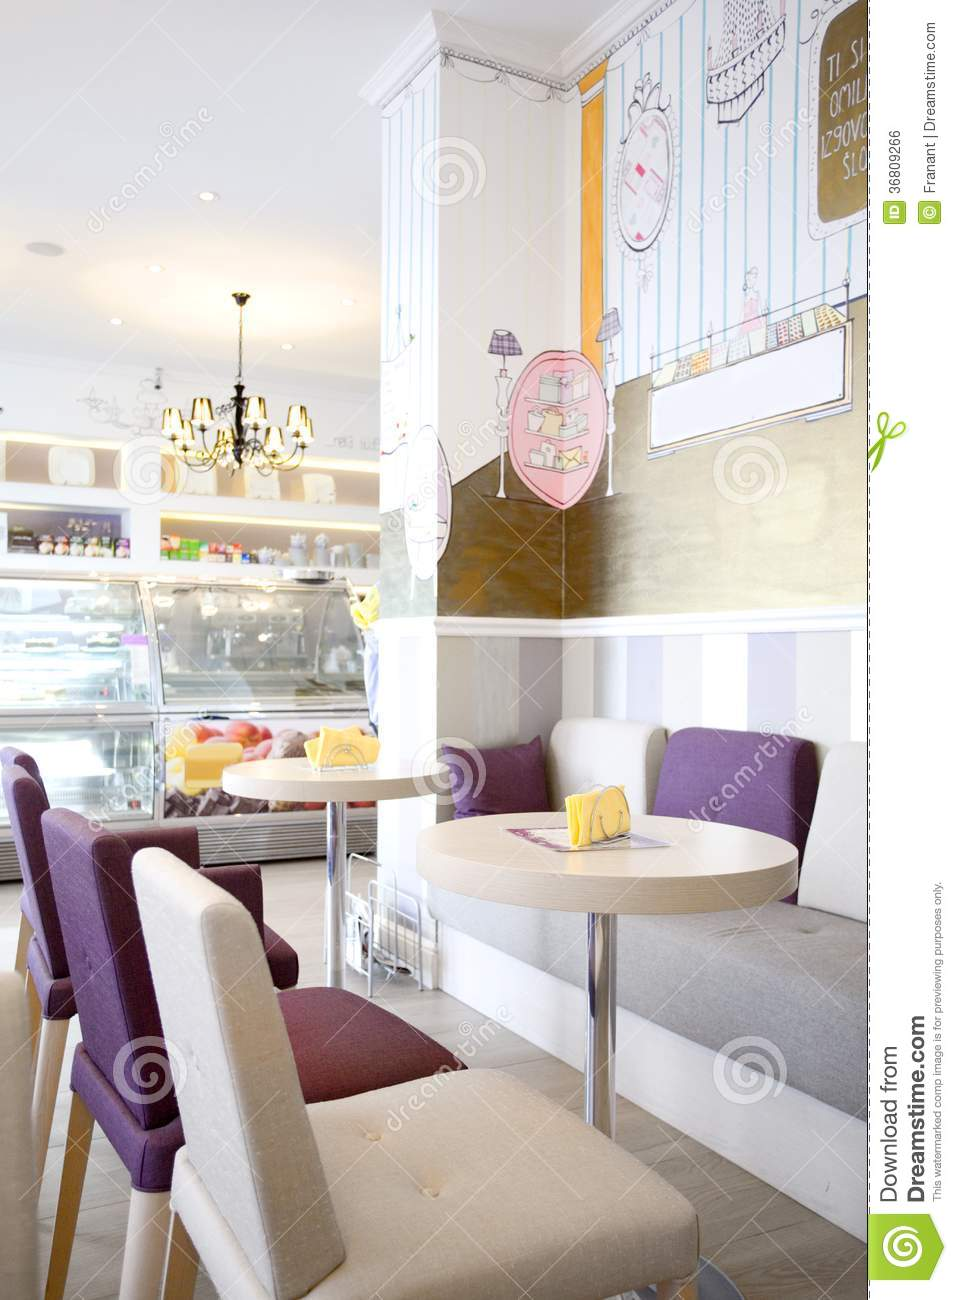 Cake House Interior Design : Interior Design Royalty Free Stock Image - Image: 36809266